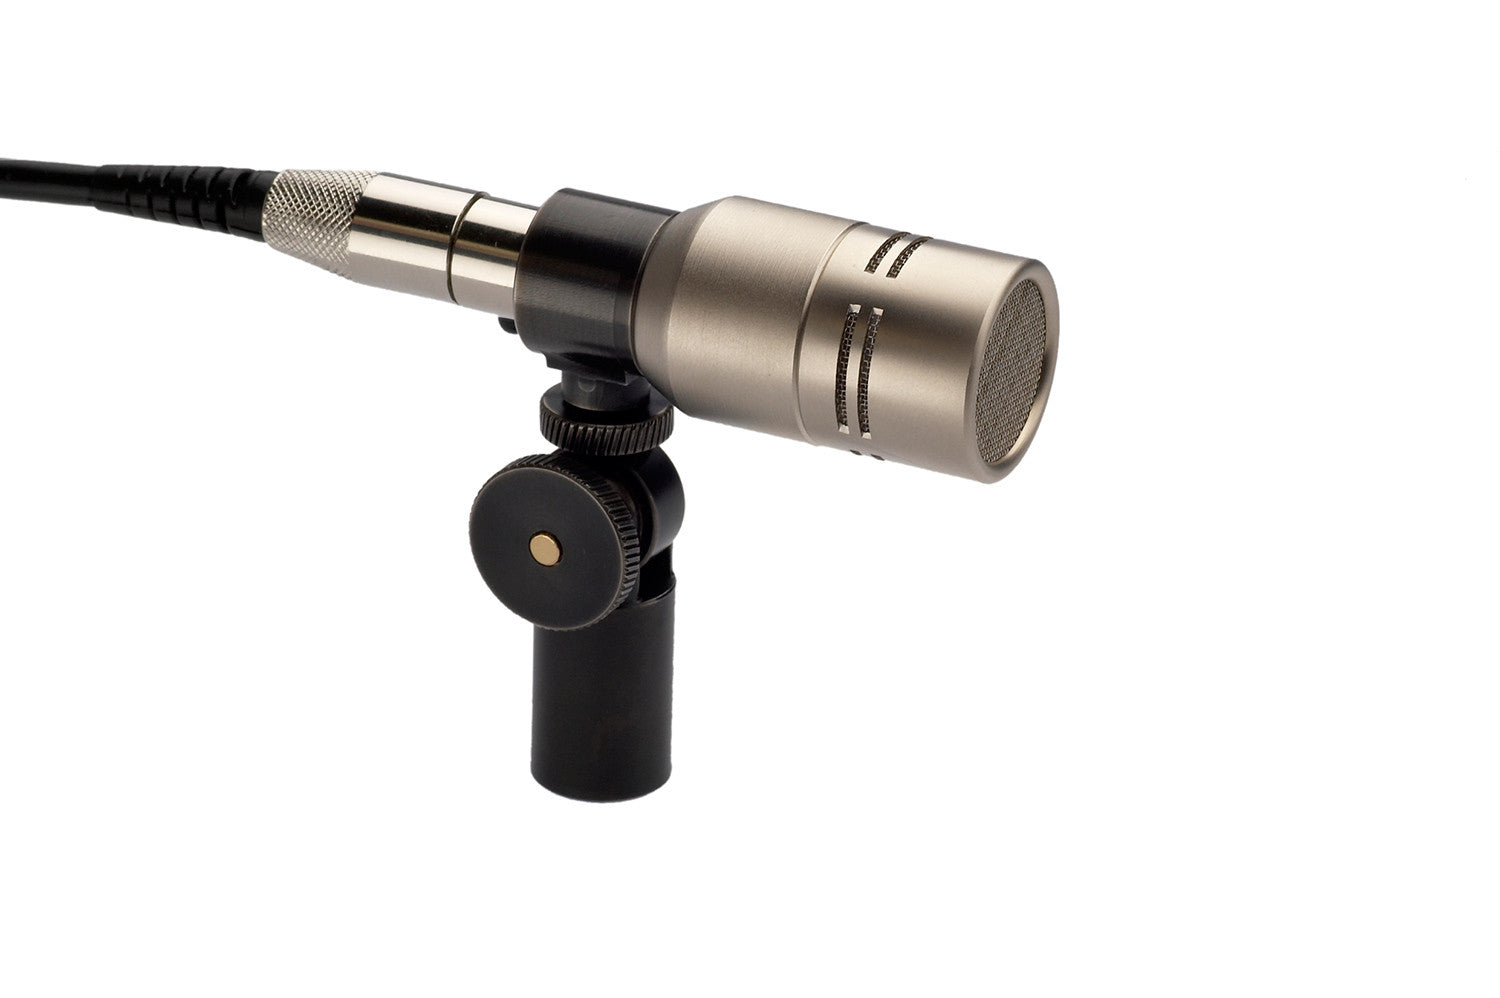 RODE NT6 Compact Condenser Microphone - Audio - RØDE - Helix Camera